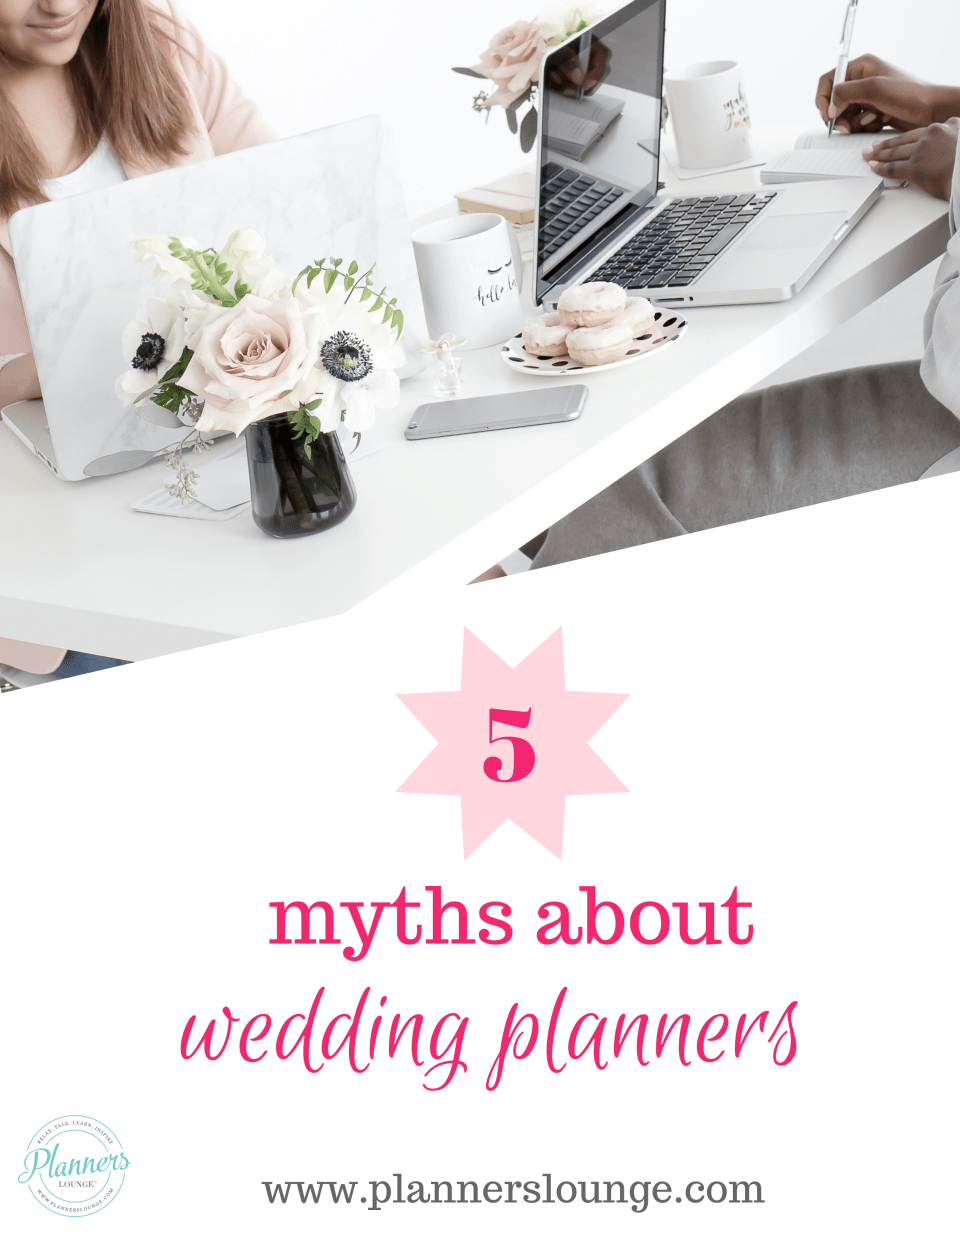 5 Myths About Wedding Planners